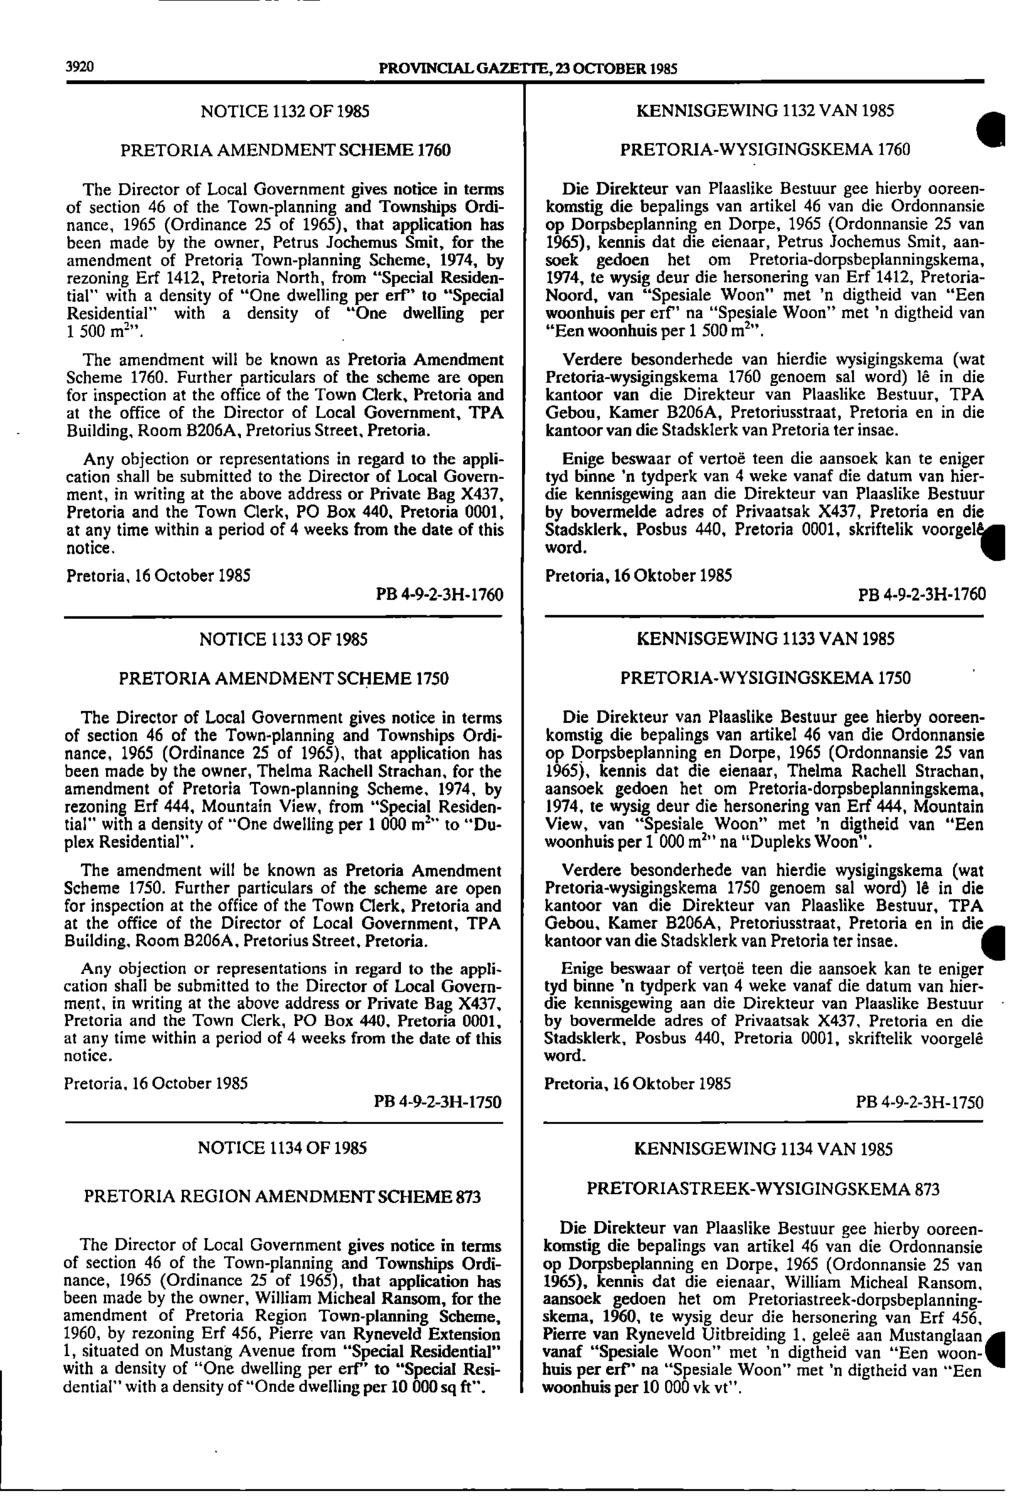 3920 PROVINCIAL GAZETTE, 23 OCTOBER 1985 NOTICE 1132 OF 1985 KENNISGEWING 1132 VAN 1985 PRETORIA AMENDMENT SCHEME 1760 PRETORIA WYSIGINGSKEMA 1760 ill The Director of Local Government gives notice in